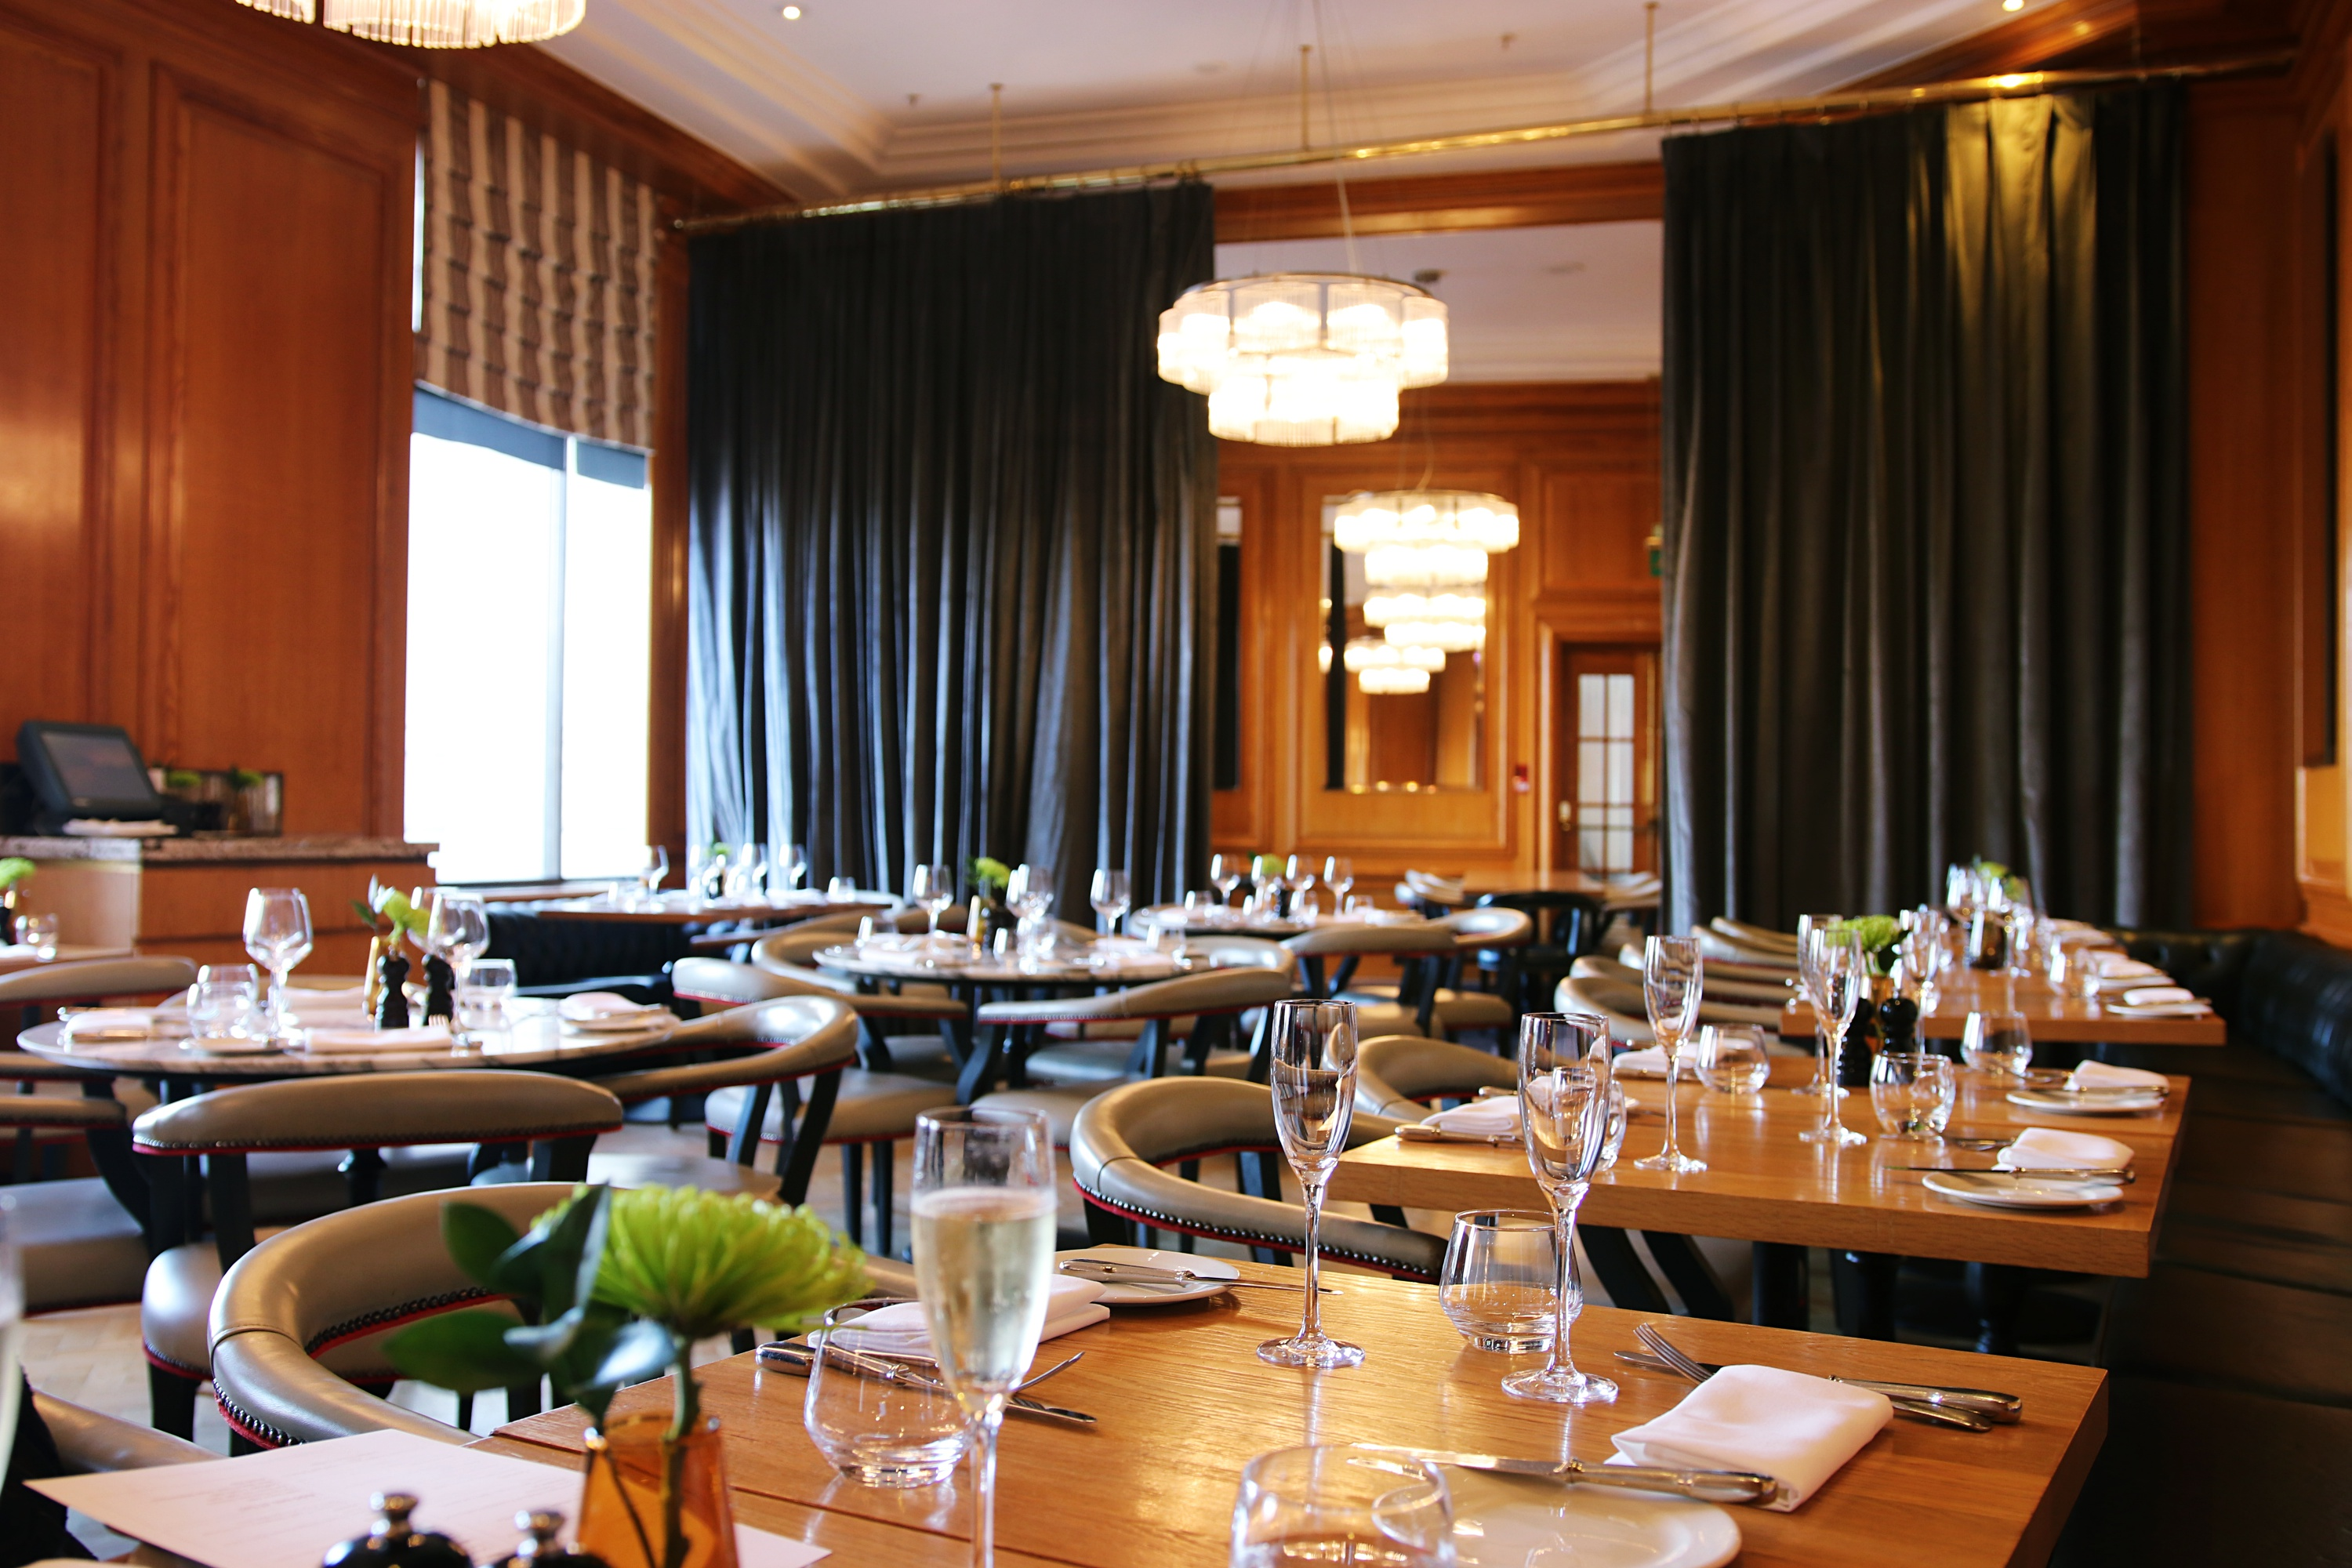 Gillrays SteakHouse & Bar London Review - London Lifestyle Blog